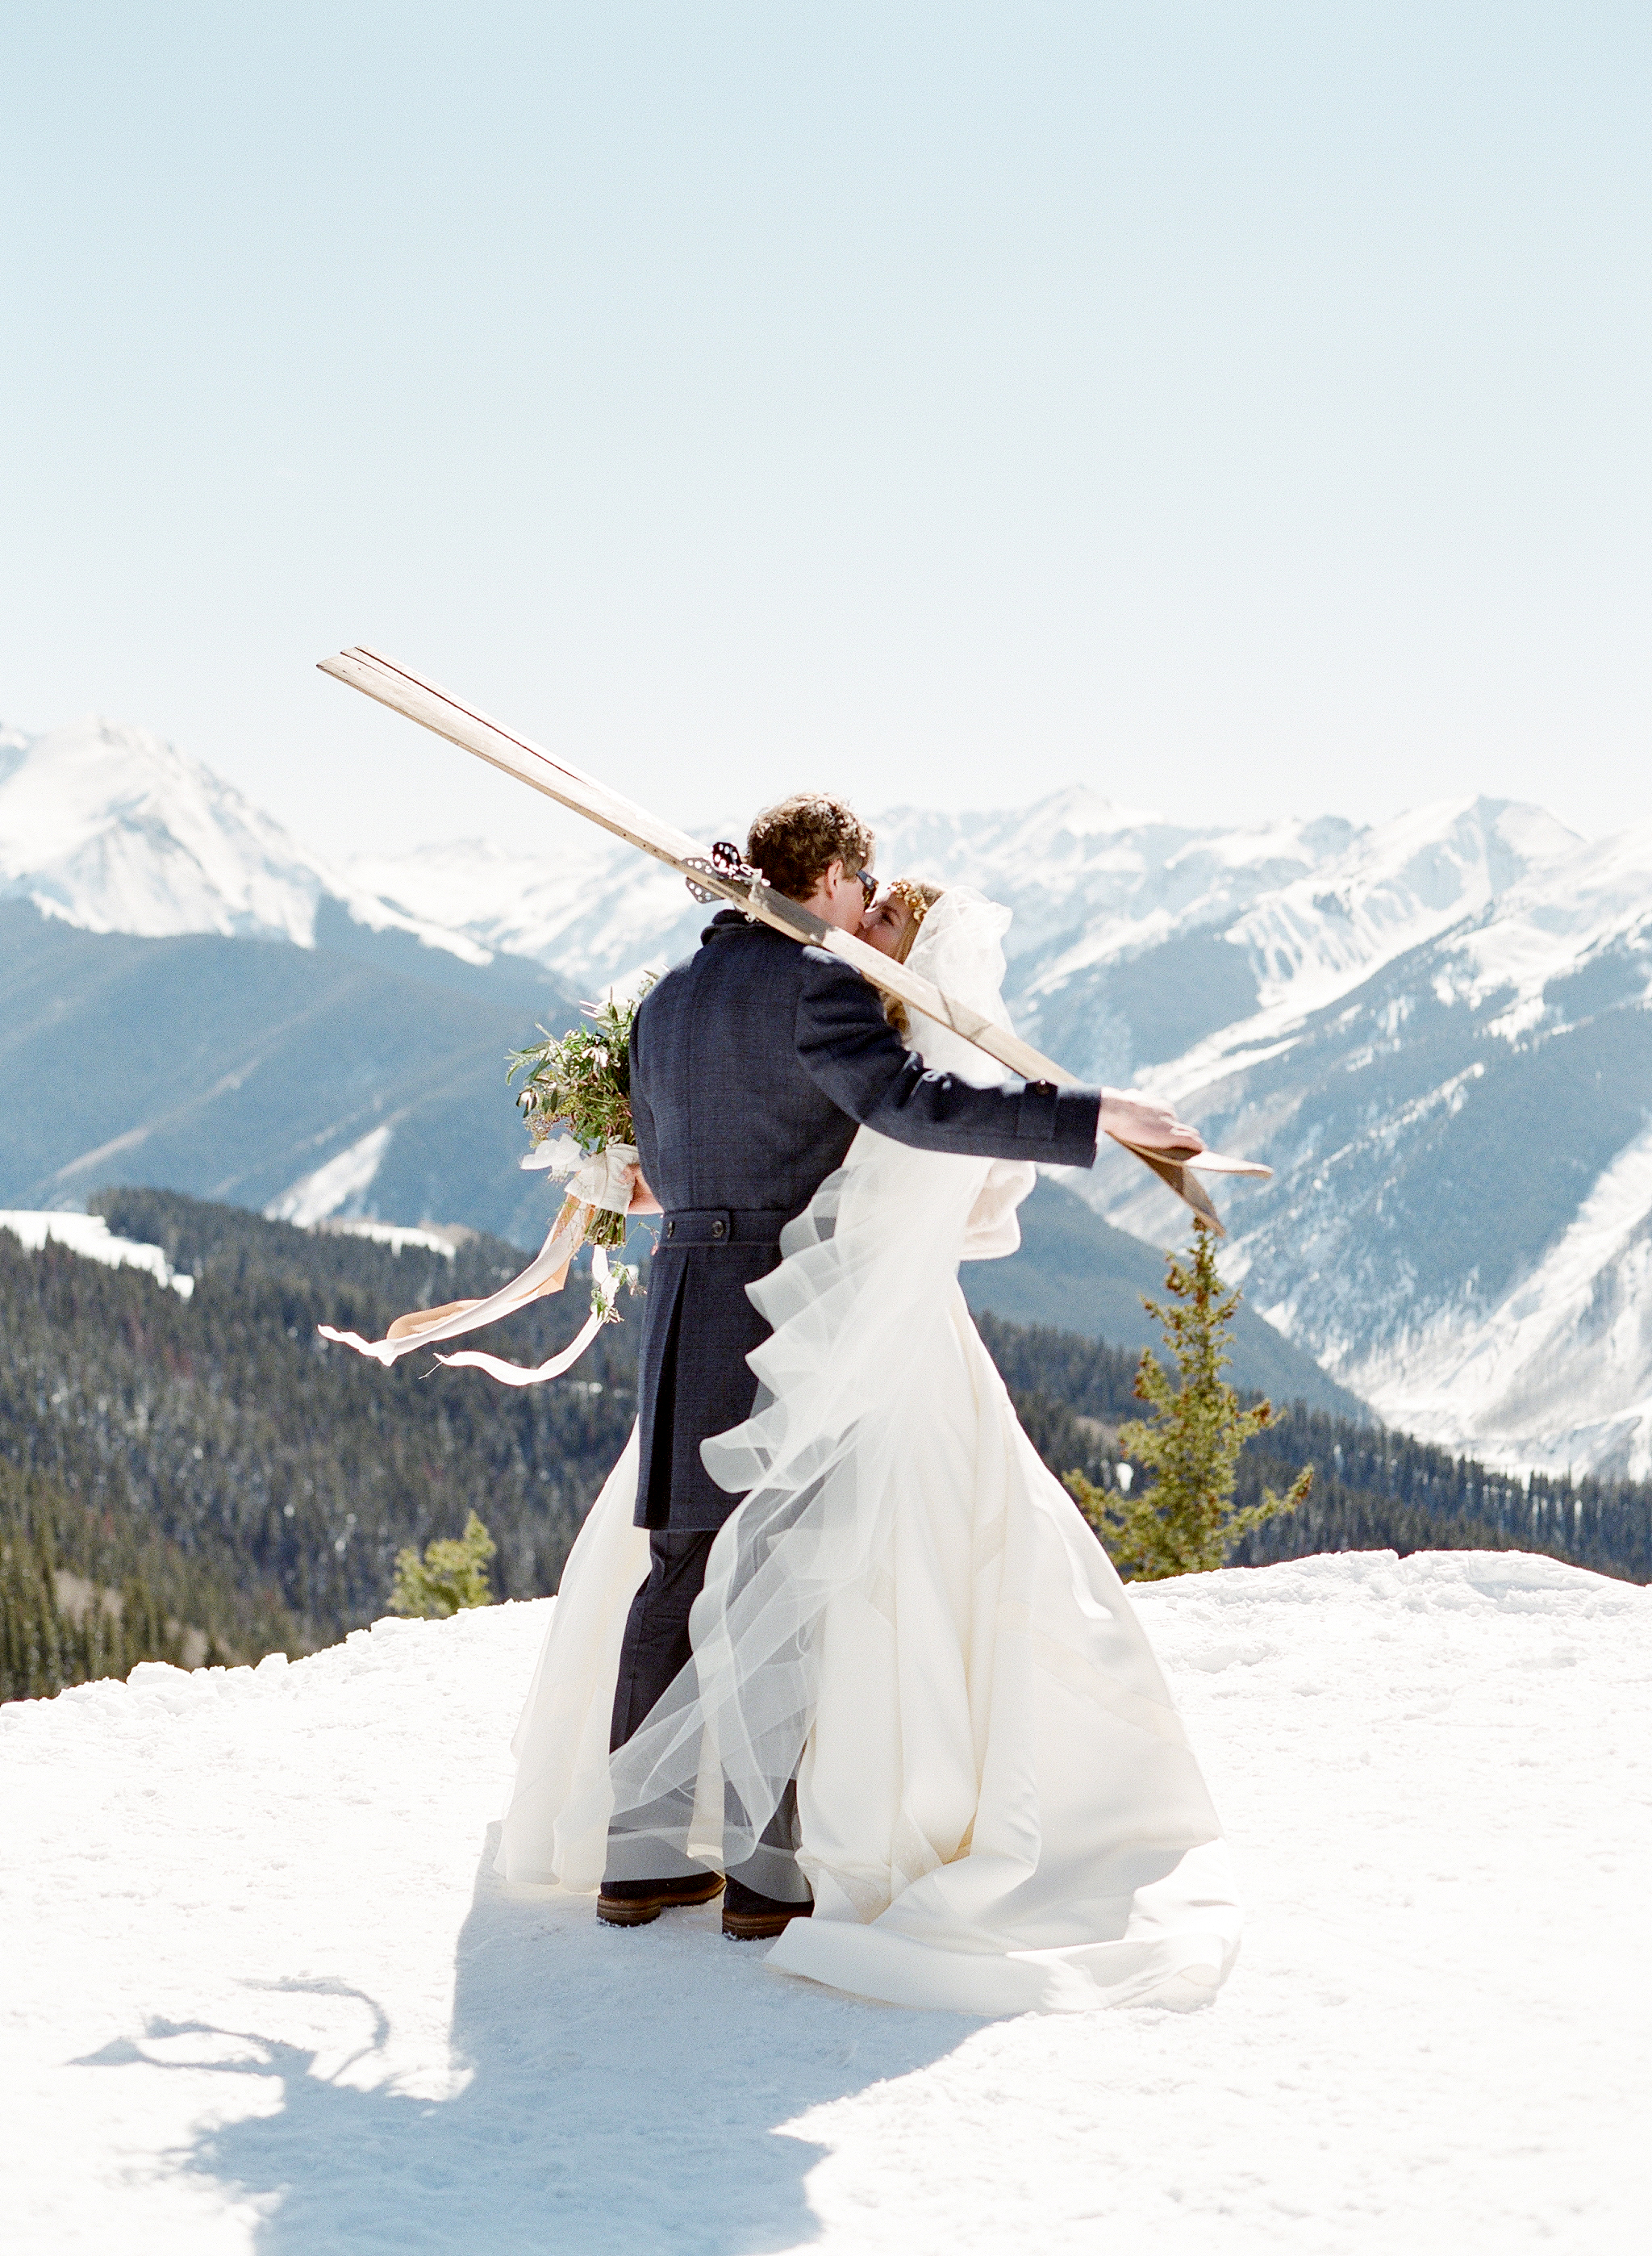 A Wintery Aspen Wedding Inspired by The Little Prince - Bella Design & Planning